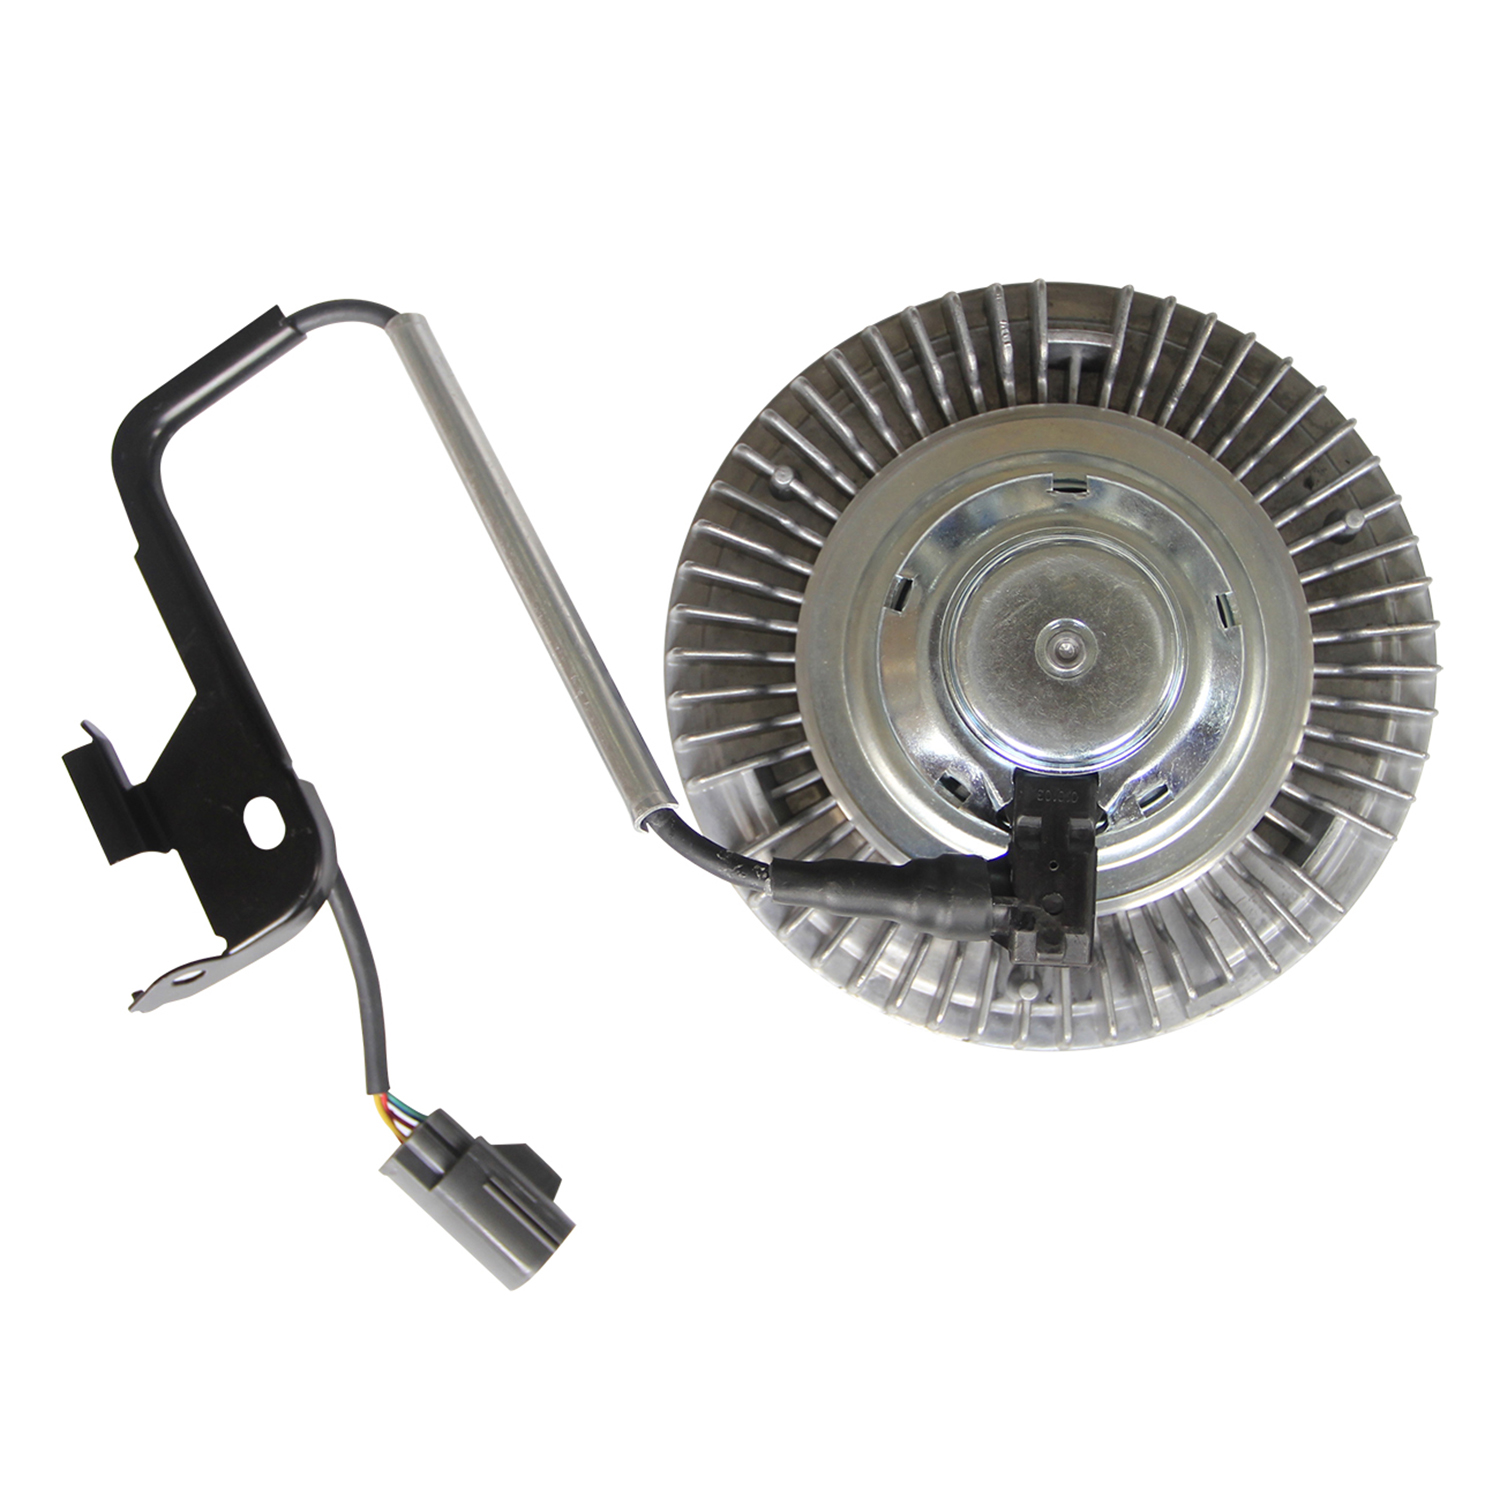 hight resolution of details about new engine cooling electric fan clutch for 04 09 dodge ram 2500 5 9l 6 7l